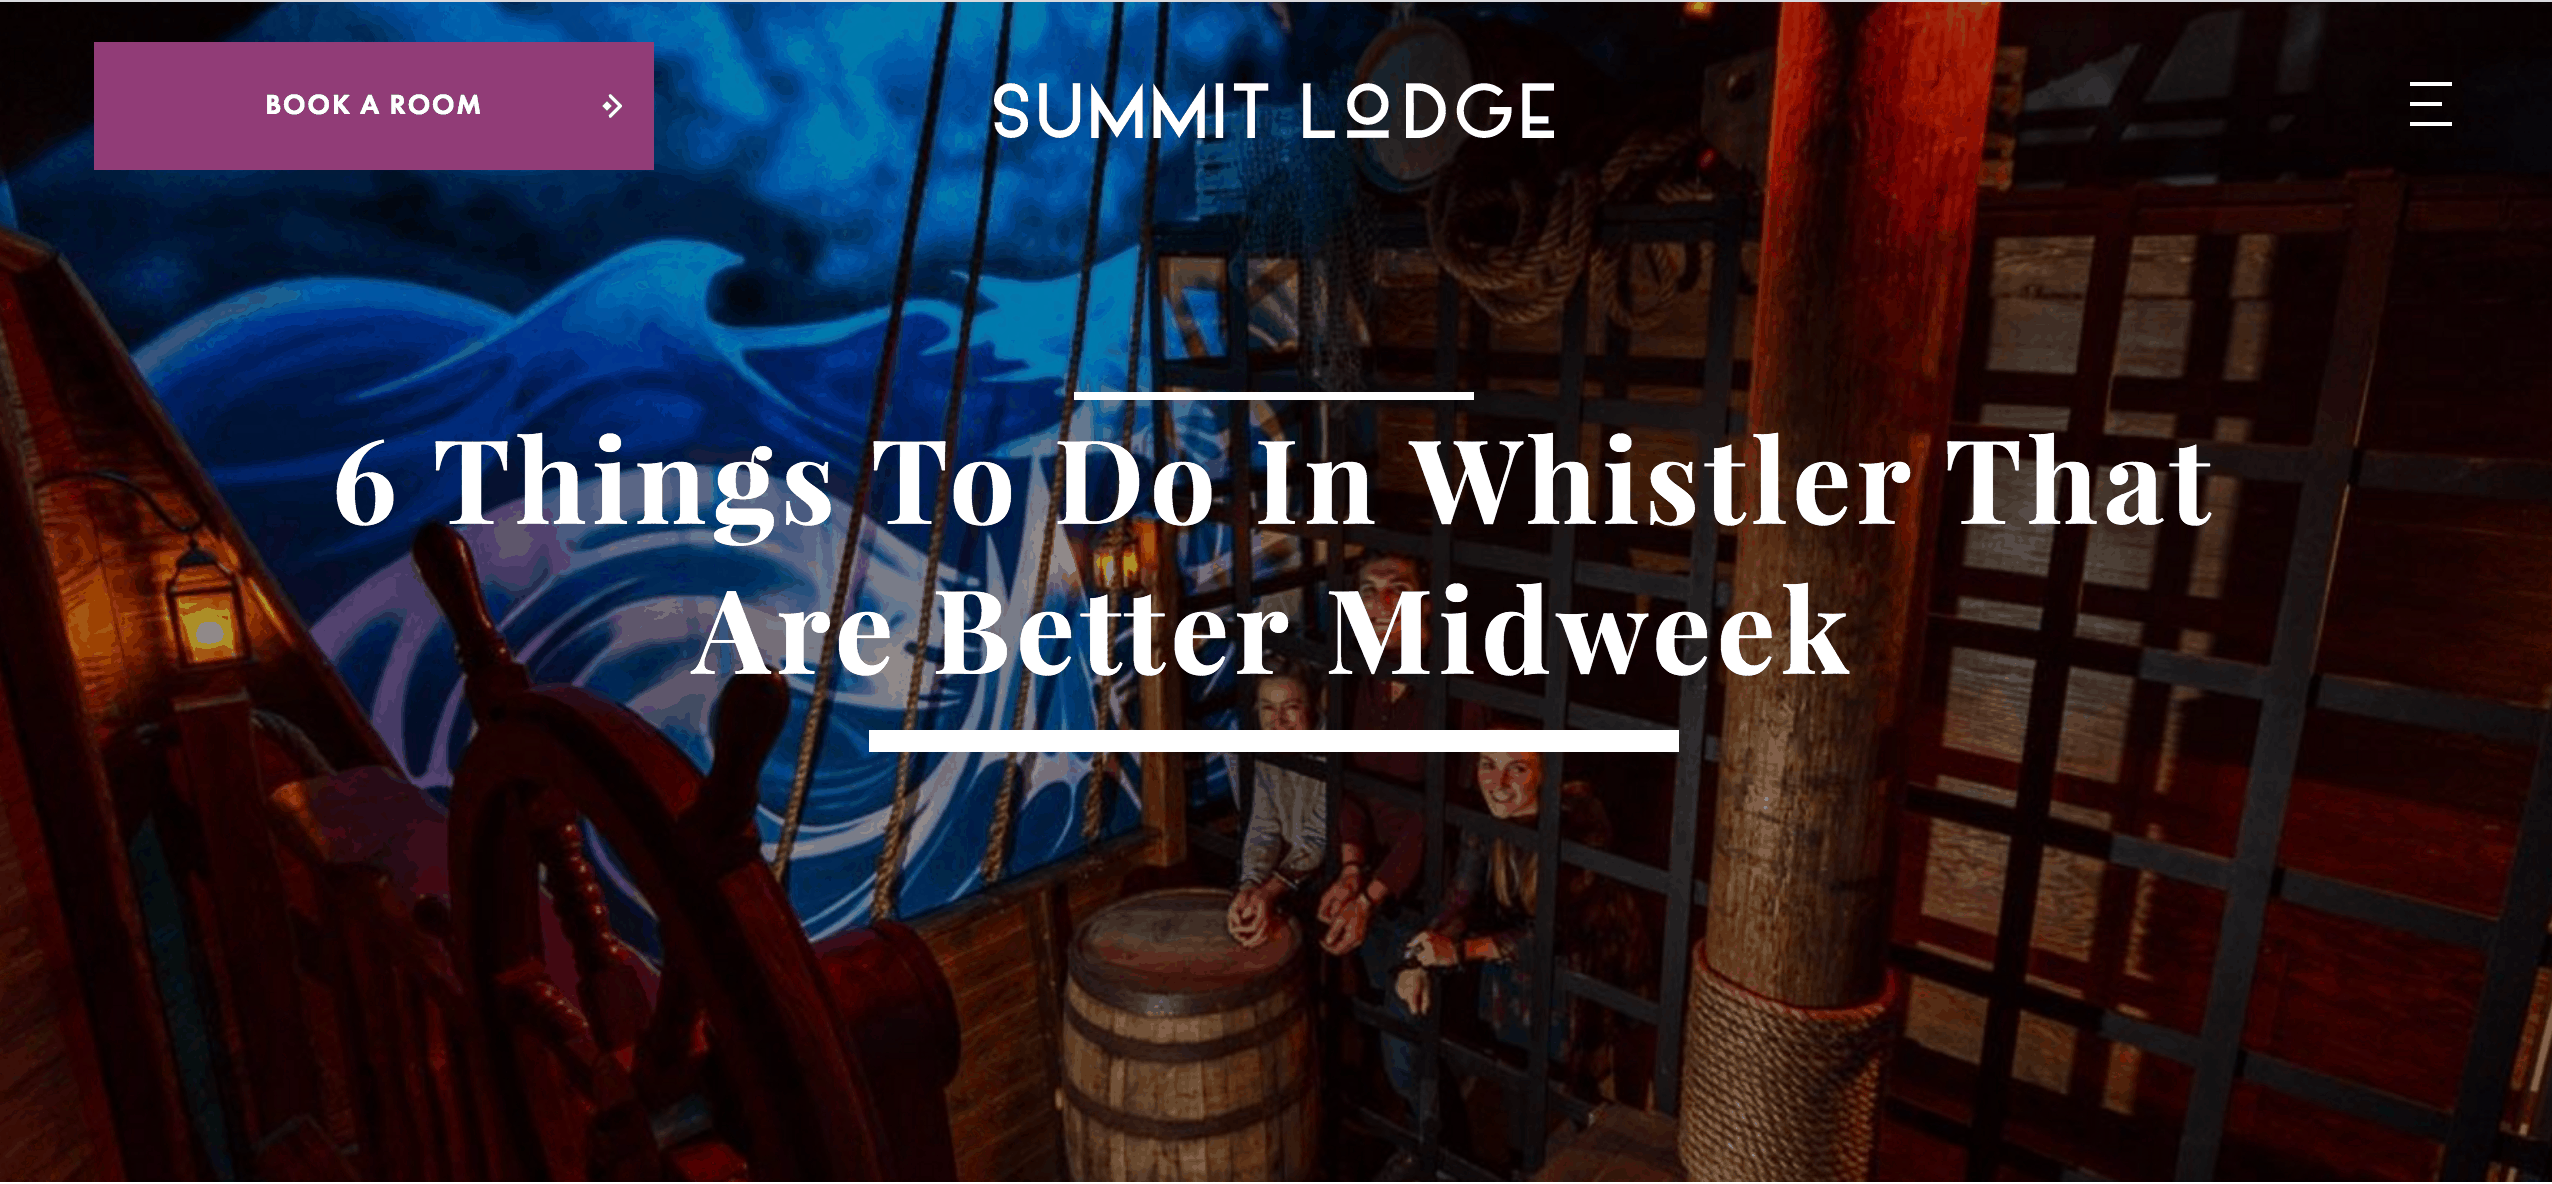 Summit Lodge - Things to do in Whistler Midweek Article